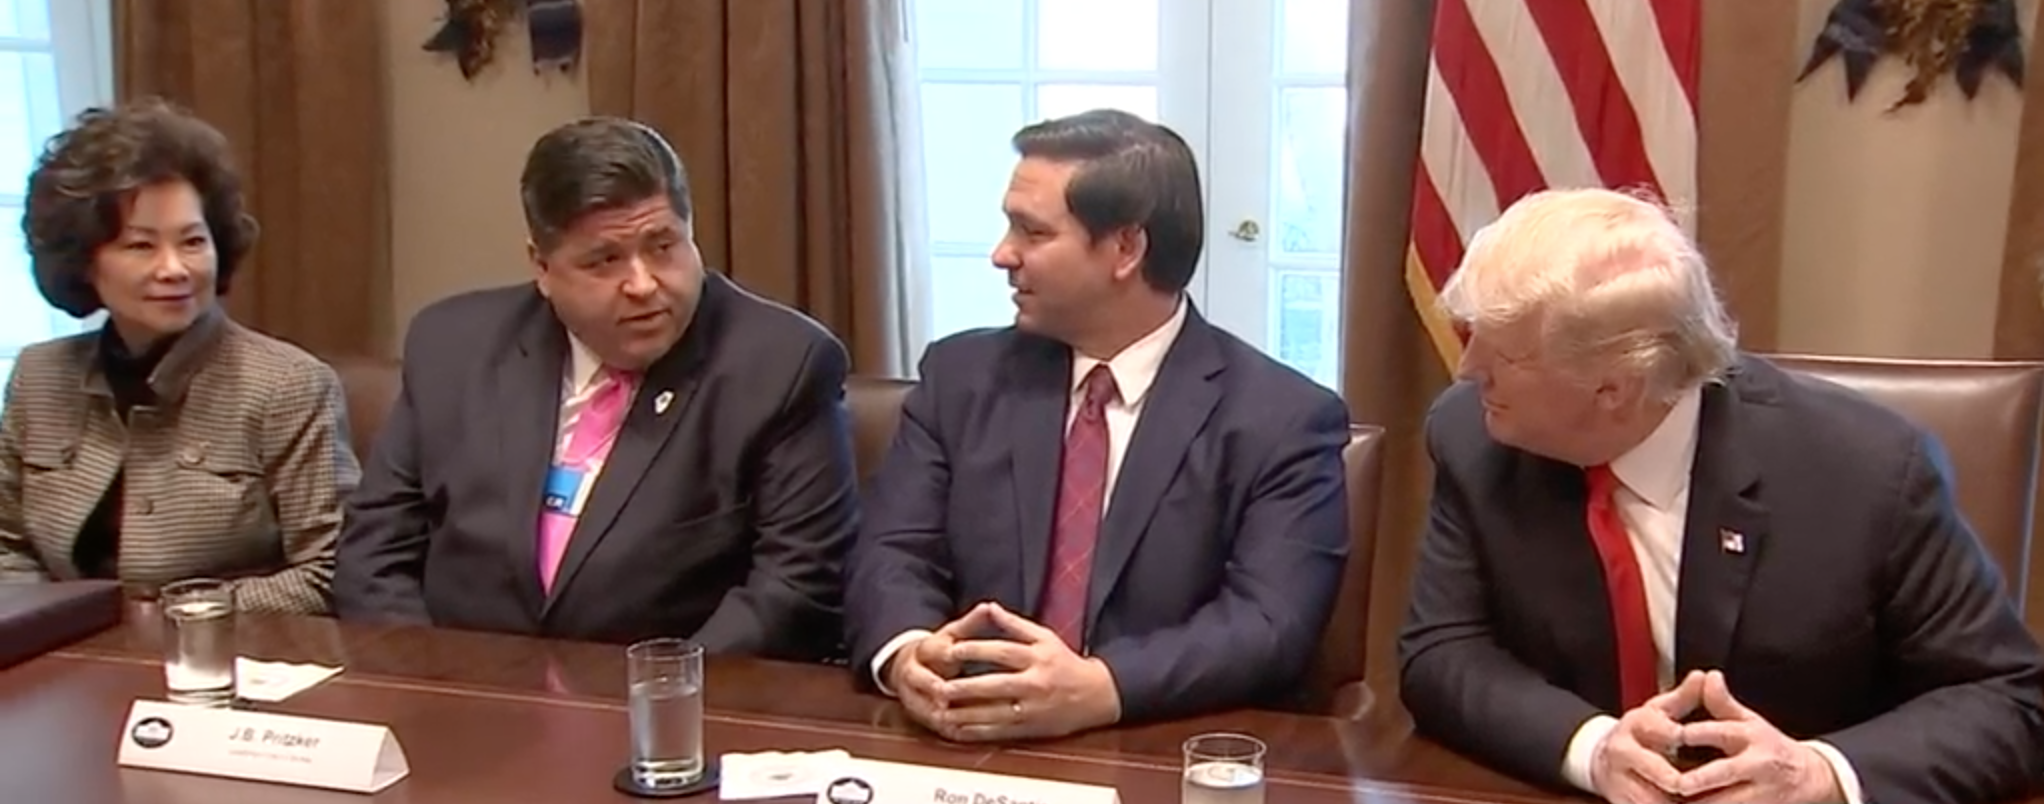 From left: federal Transportation Secretary Elaine Chao, Illinois Gov.-elect J.B. Pritzker, Florida Gov.-elect Ron DeSantis, and President Donald Trump.